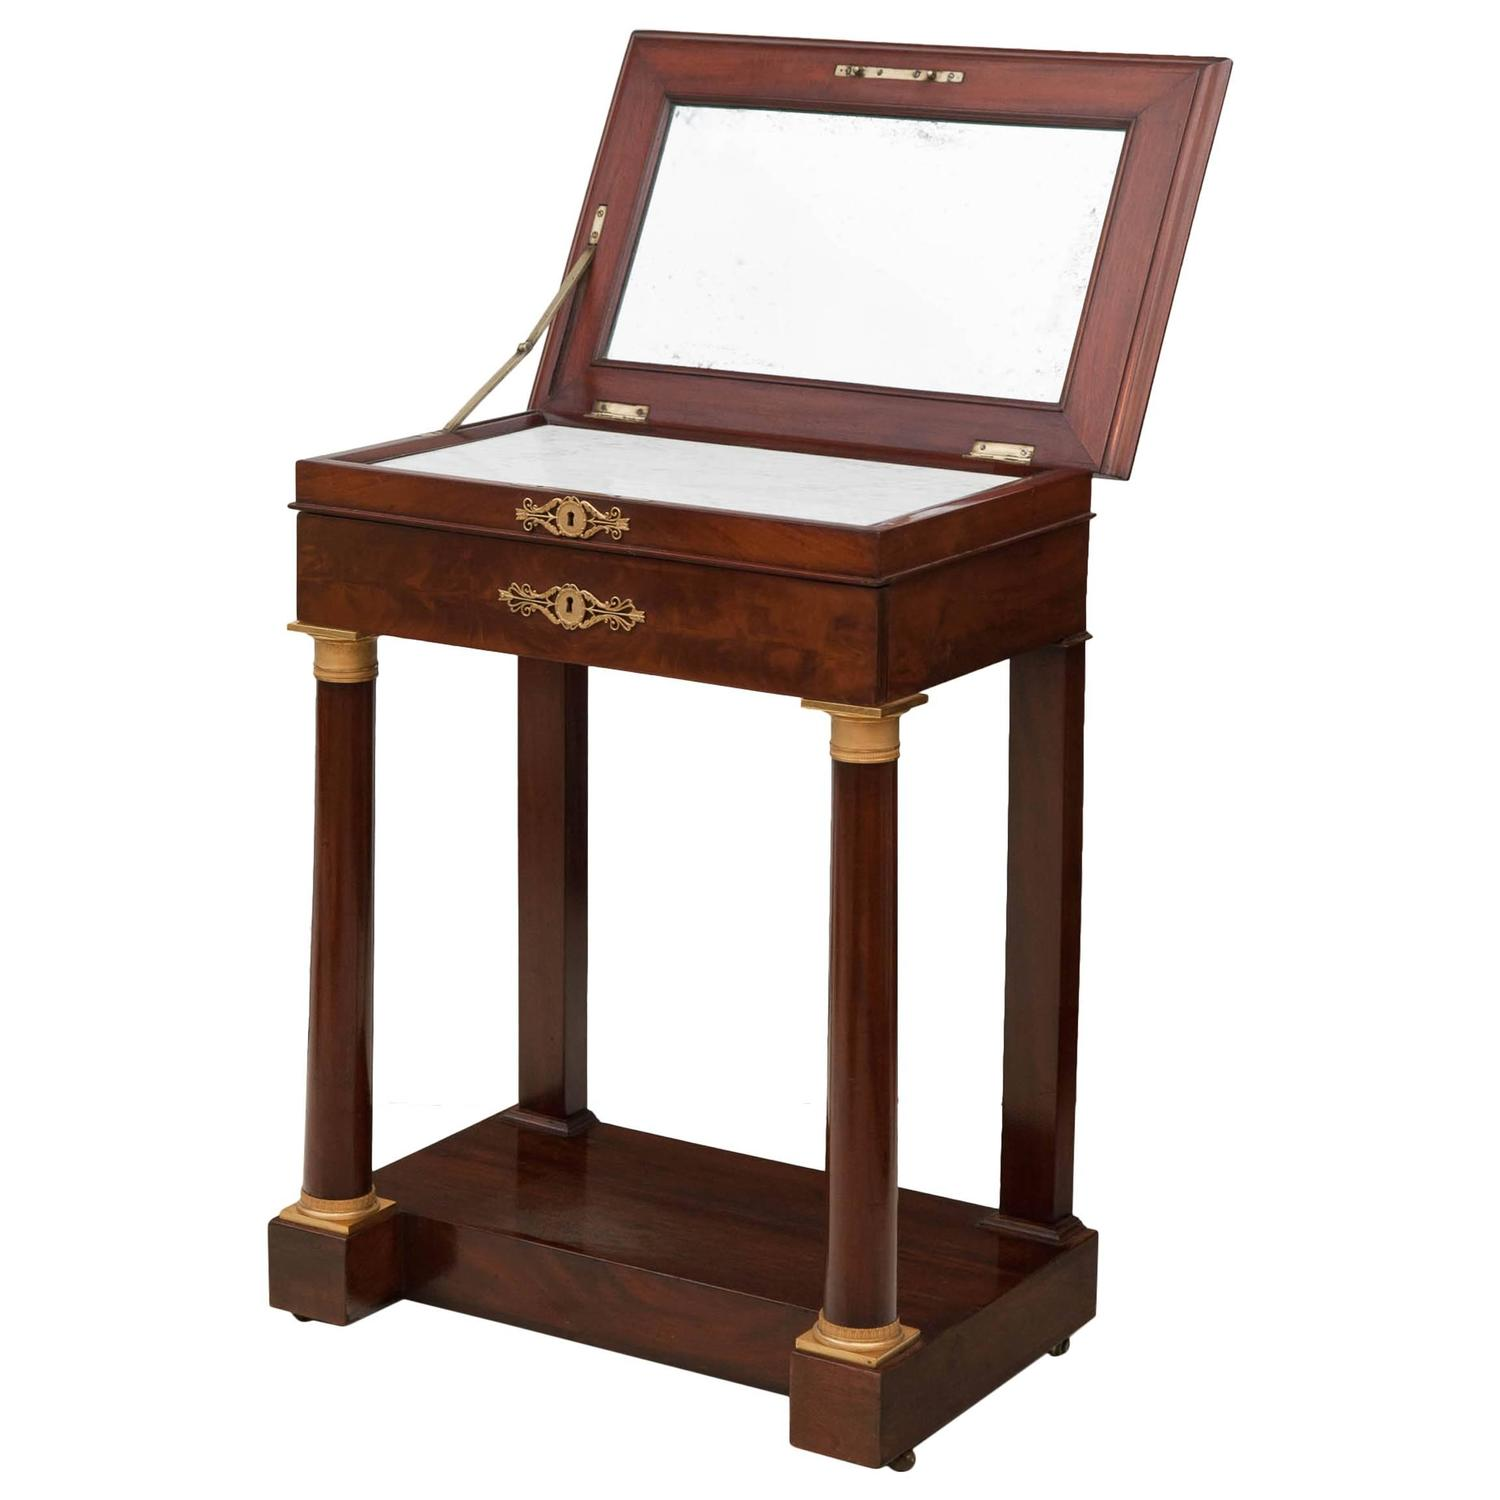 Small Empire Dressing Table at 1stdibs